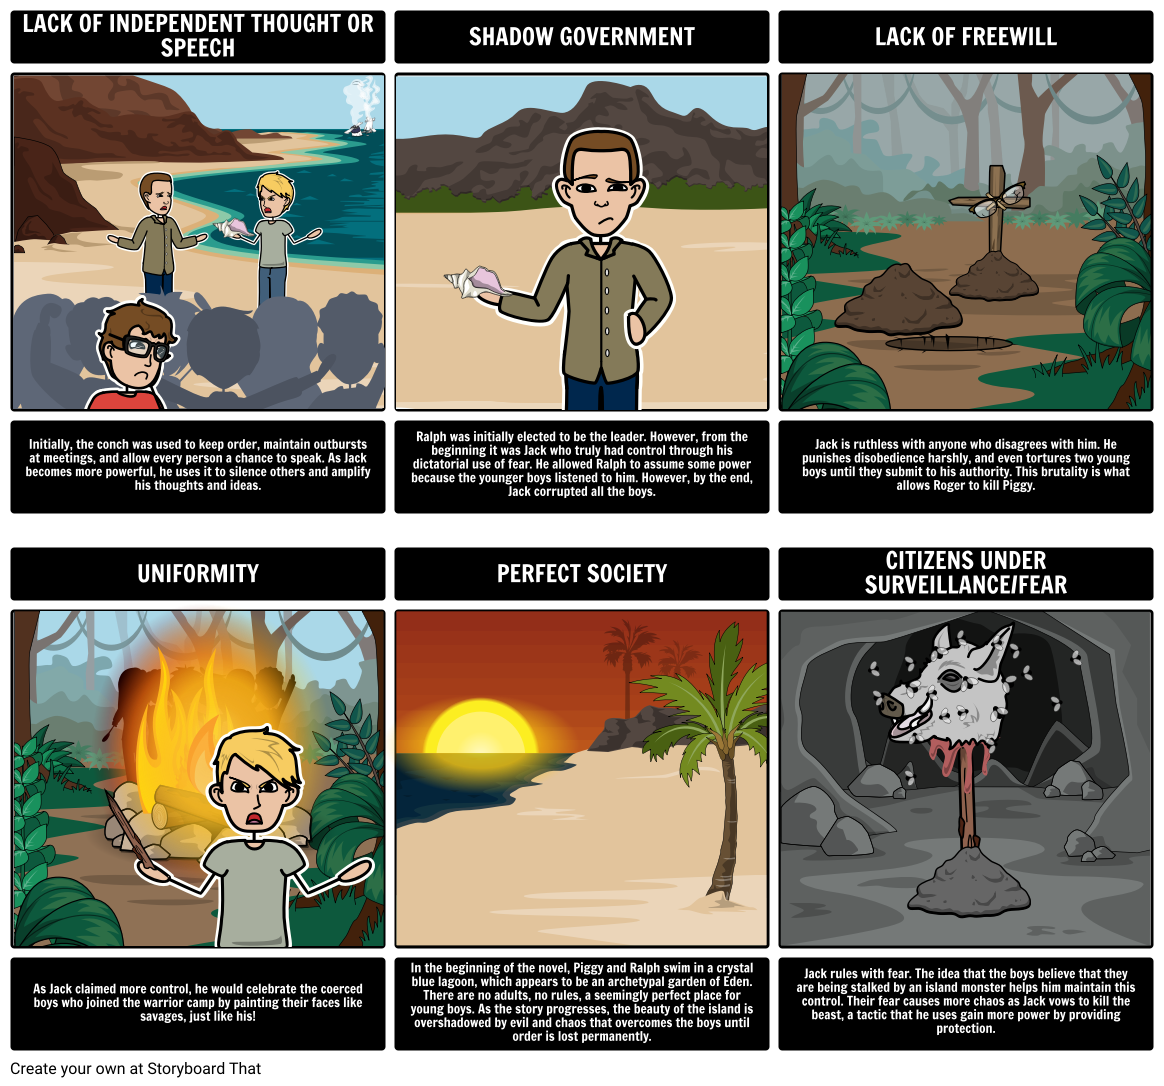 lord of the flies dystopia storyboard by rebeccaray lord of the flies dystopia